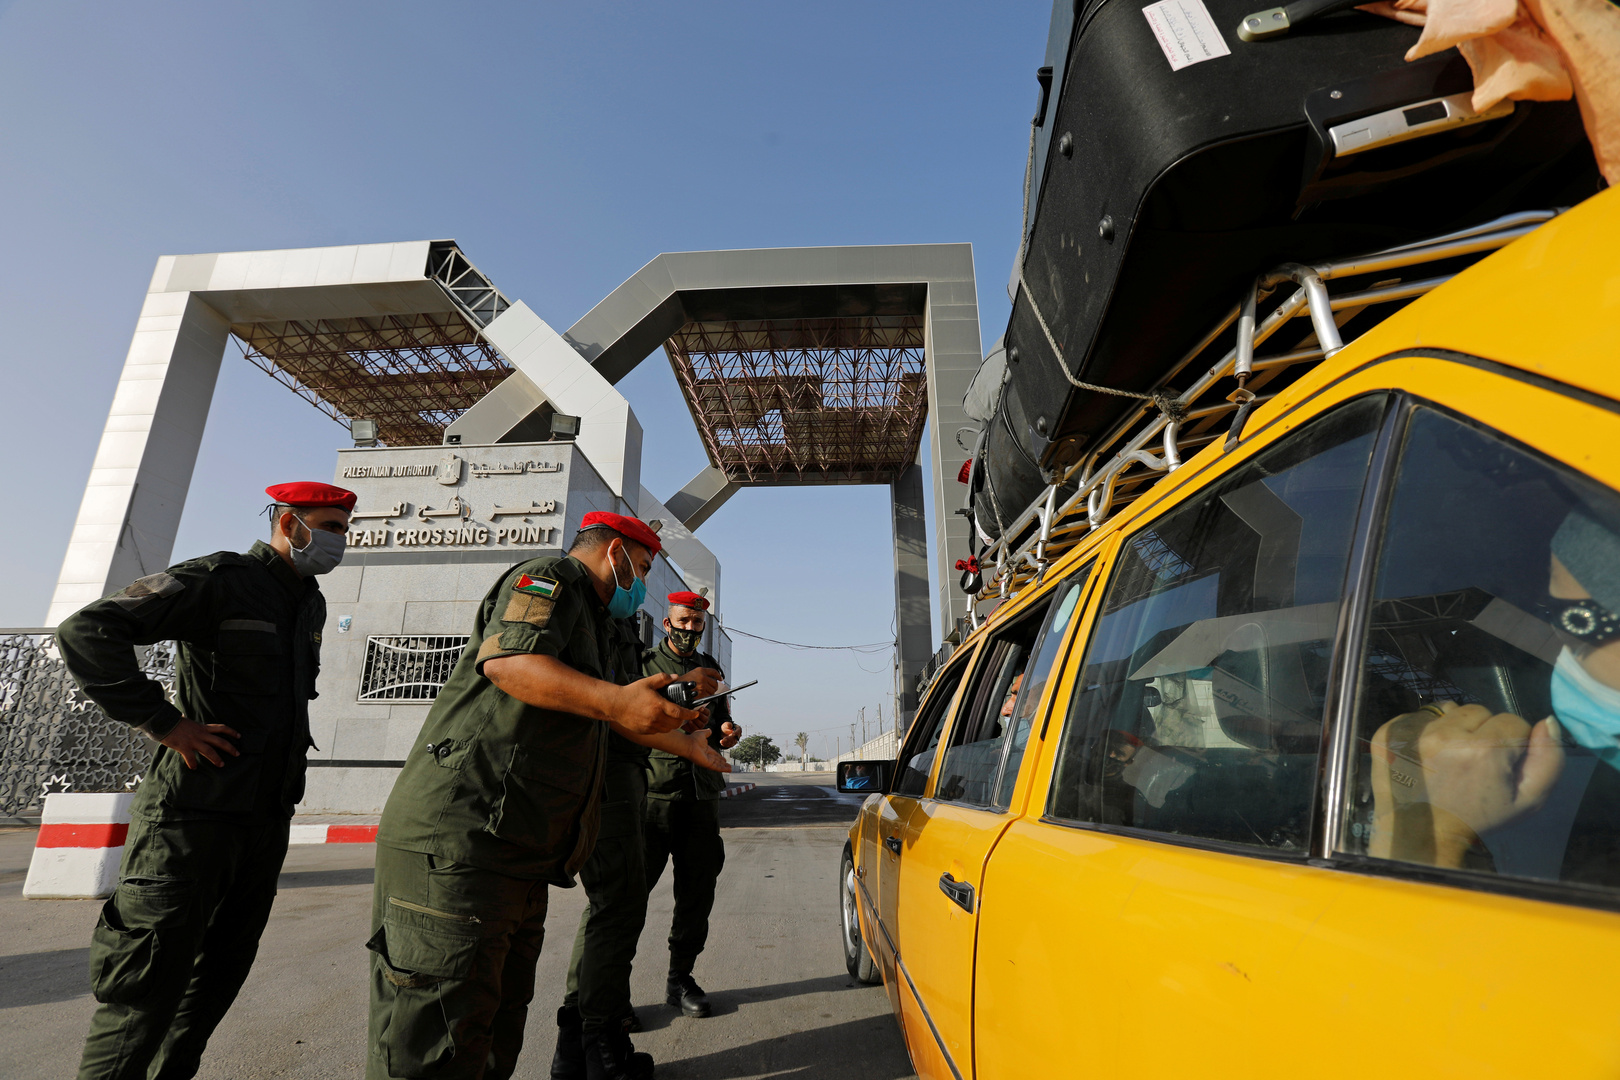 Palestinian Embassy in Egypt: The Rafah land crossing will be opened starting from Tuesday